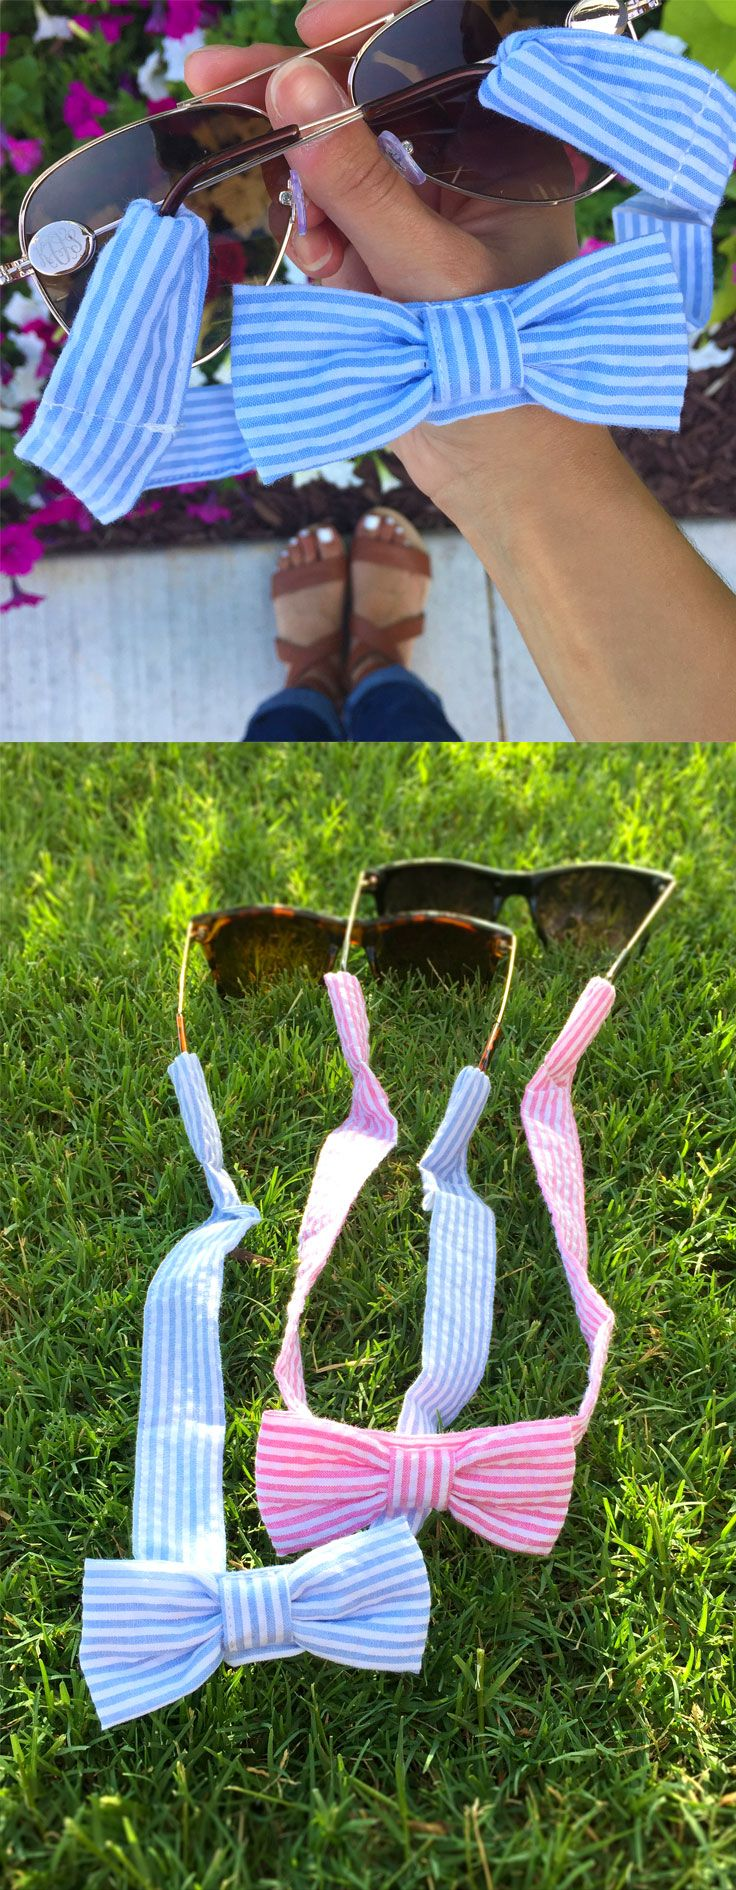 The CUTEST sunglass straps we've ever seen! Get them FREE now at Marleylilly.com when you spend $20! Also, check out our Flash Sale! #salesalesale